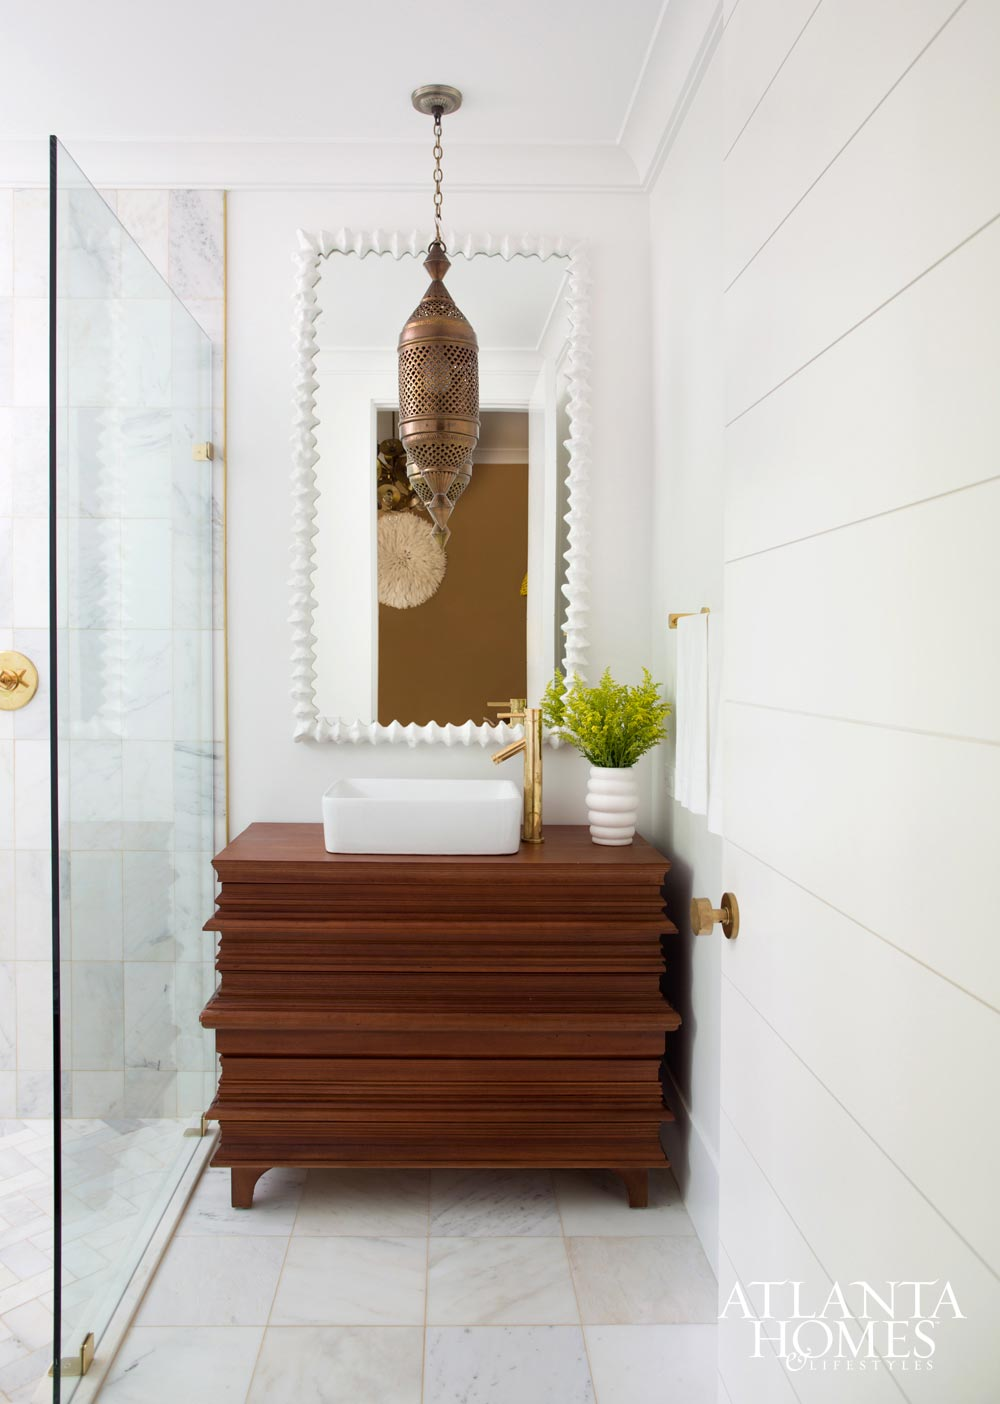 Modern eclectic bathroom in an Atlanta home via @thouswellblog